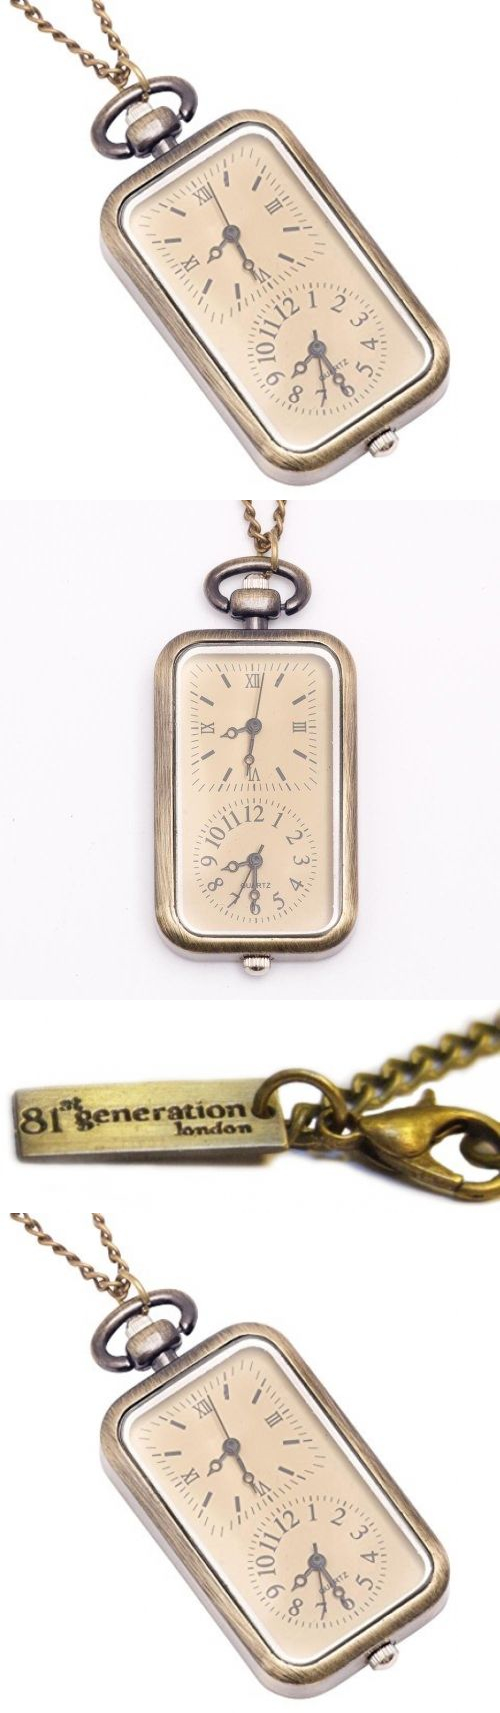 zodiac children fob item necklace charm sagittarus watches pendant pocket quartz from women fashion vintage watch chain aries for gifts in men